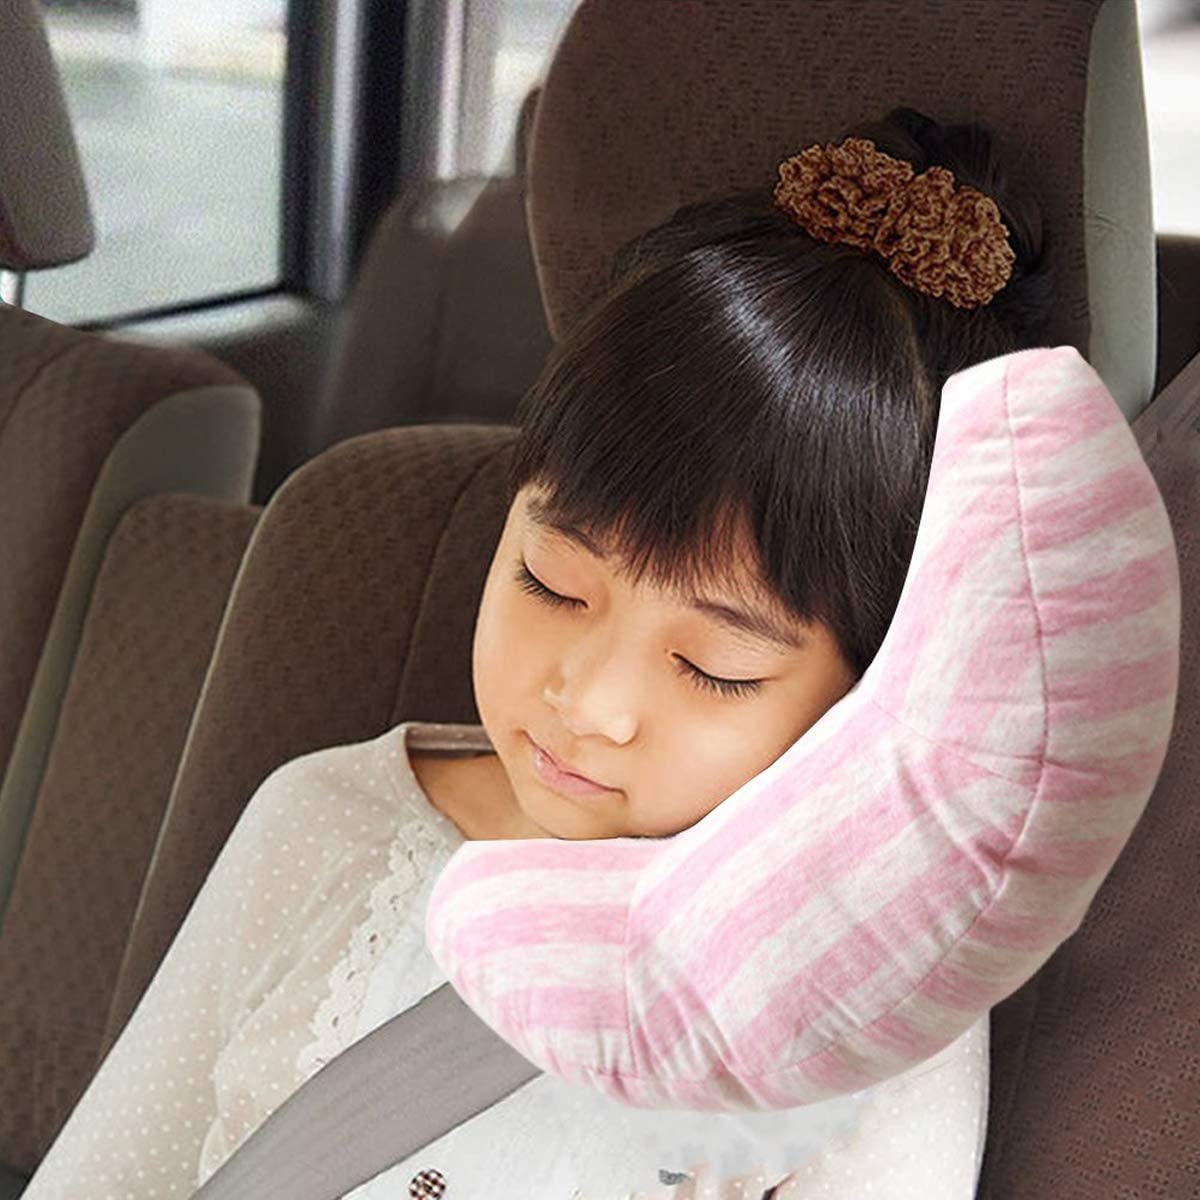 Shoulder Pad Seat seatbelt shoulder pad pink-1 Car Safety Belt Protect Car Seatbelt Cushion Protect shoulder pads car seats seatbelt pad car Shoulder Pad KiraKira Car Seat Belt Pillow